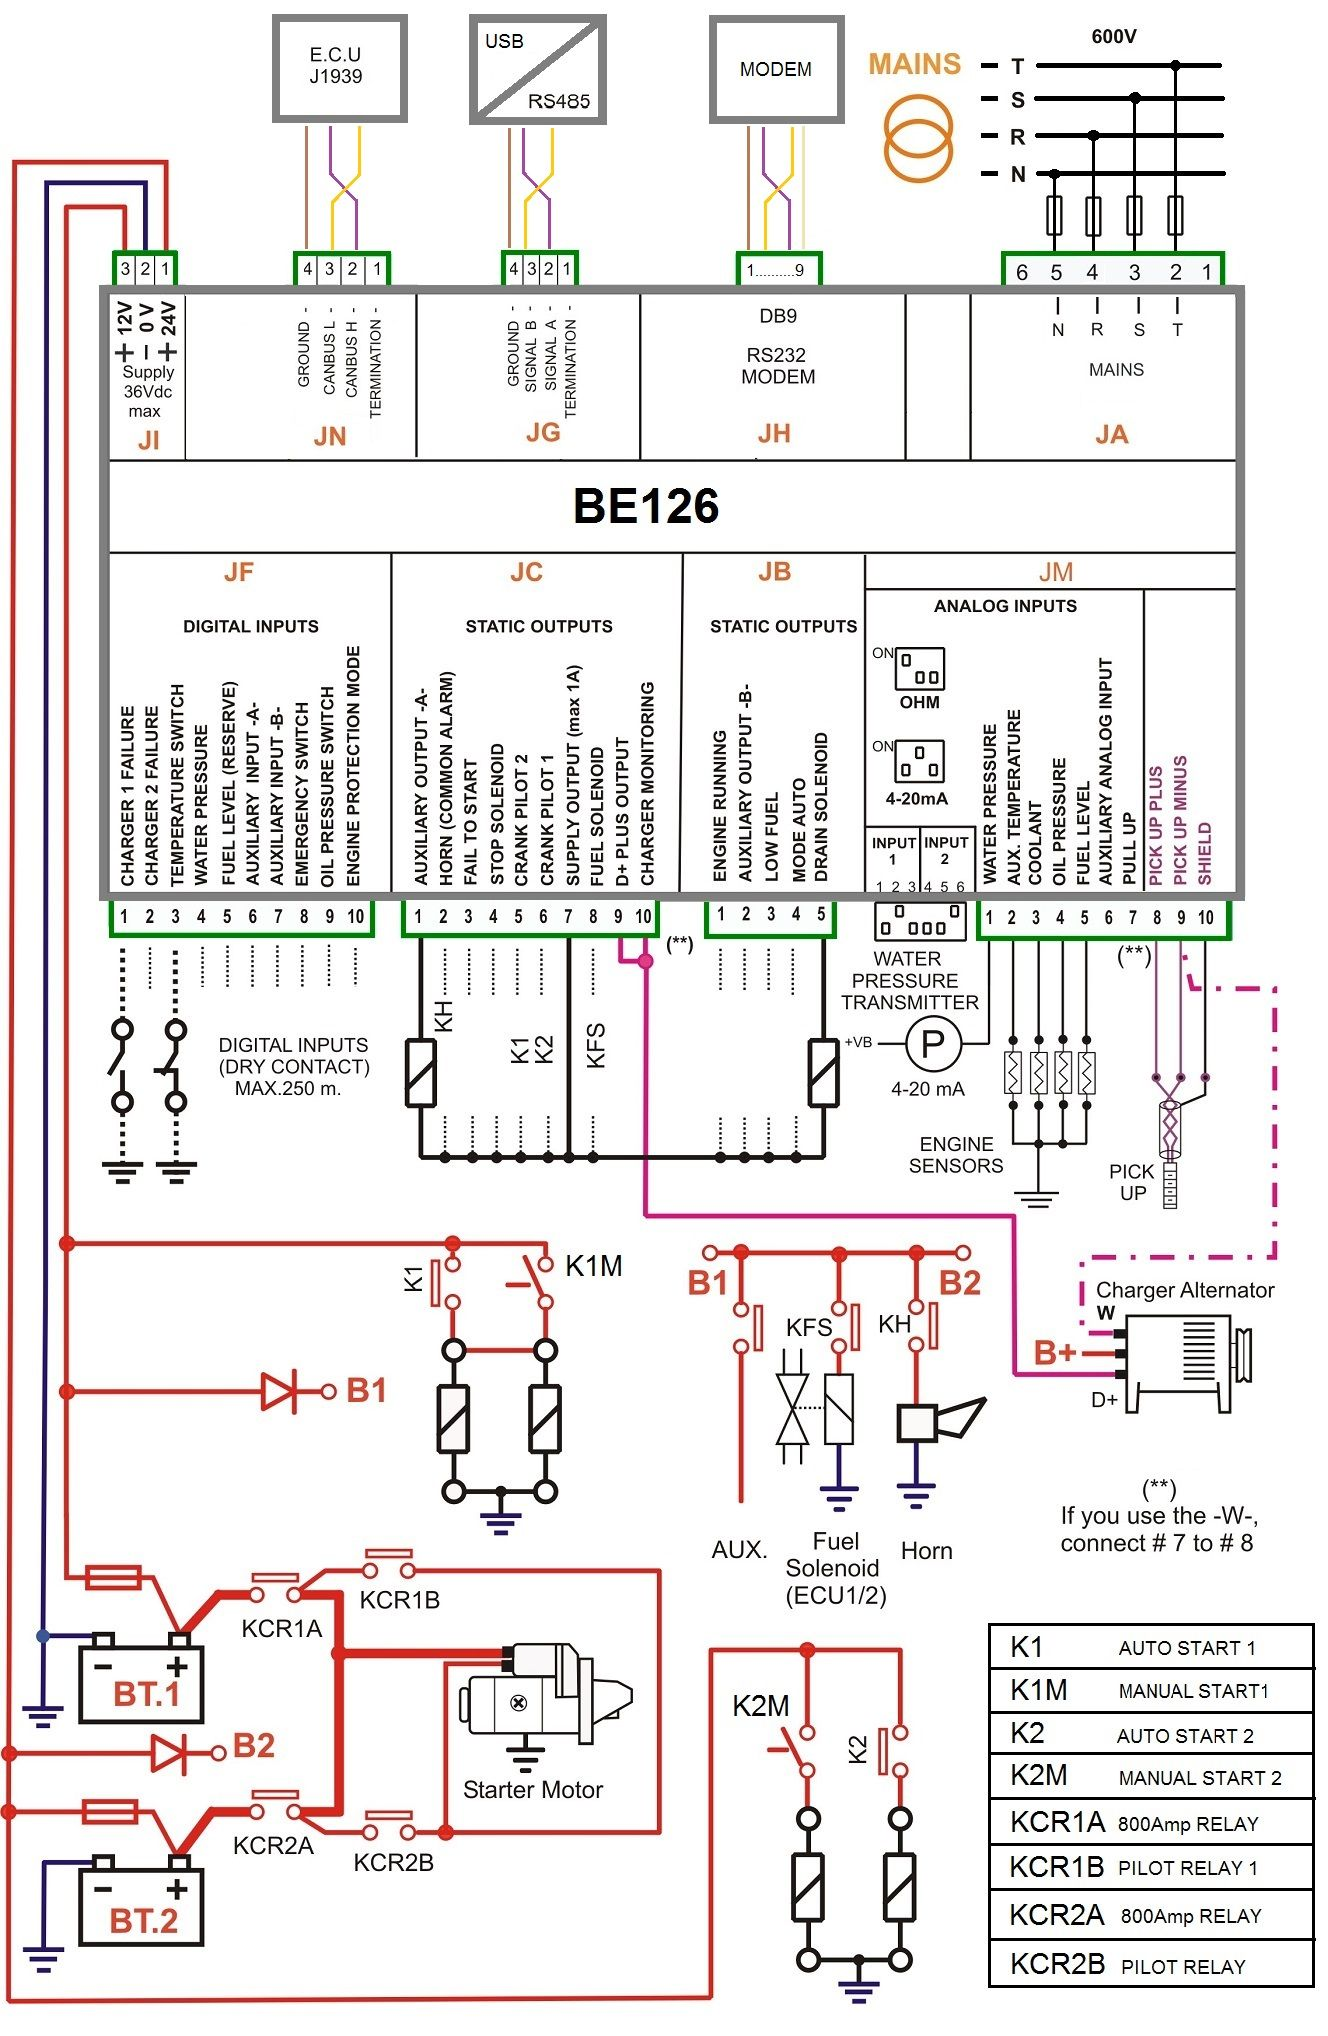 Plc Panel Wiring Diagram Http Bookingritzcarlton Info Plc Panel Wiring Diagram Fire Alarm System Fire Alarm Electrical Circuit Diagram